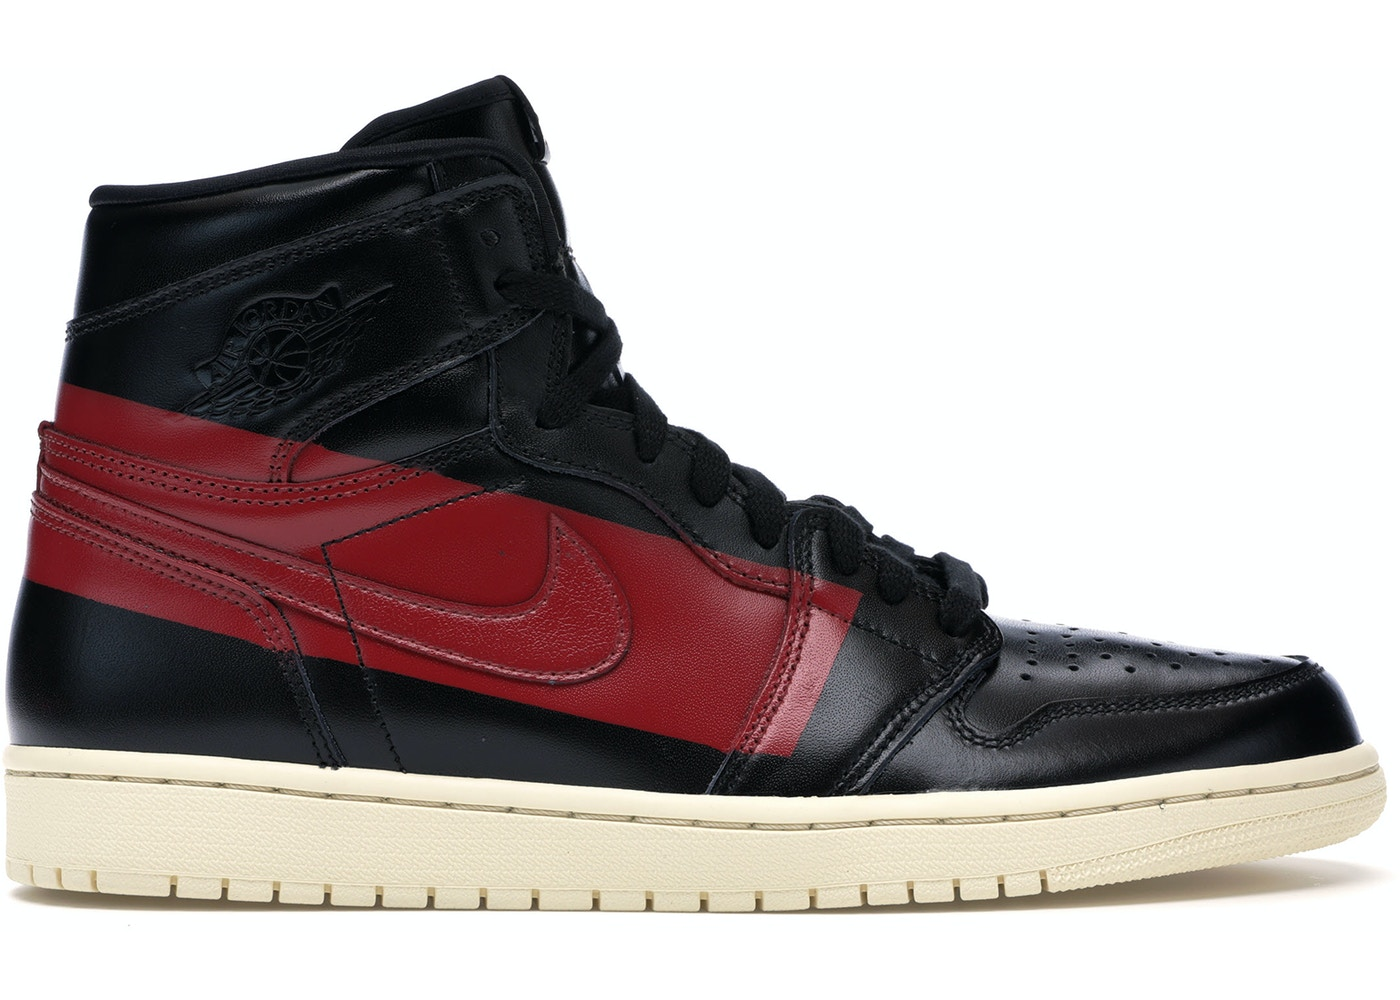 quality design 31363 161b4 Buy Air Jordan Shoes   Deadstock Sneakers